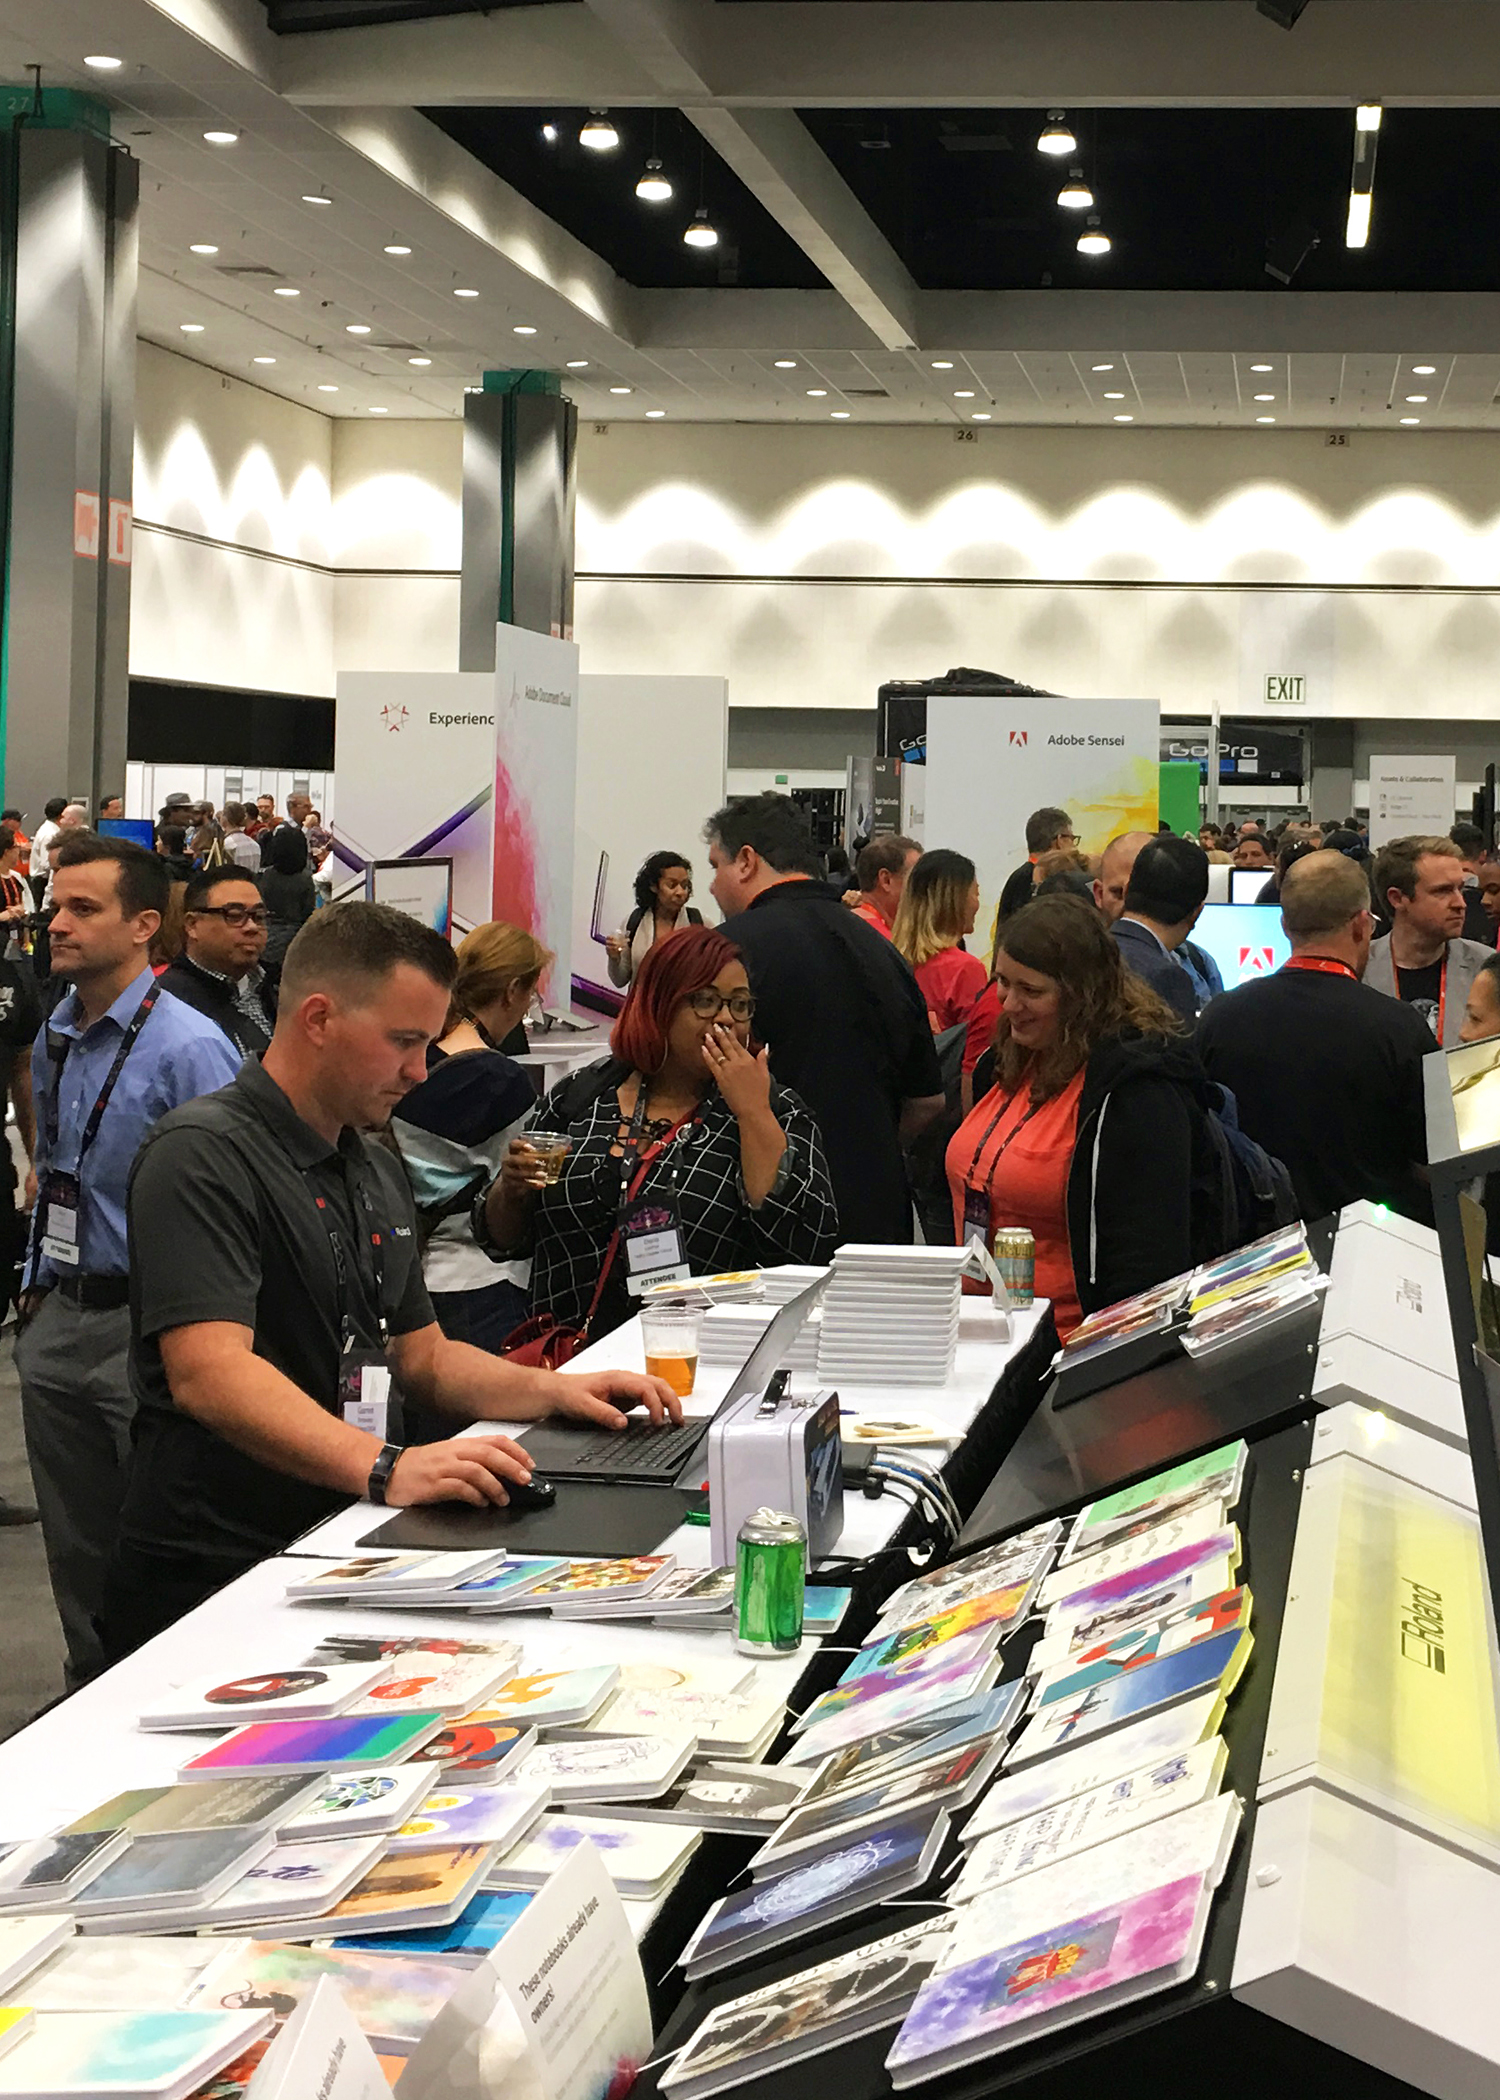 Attendees at the 2019 Adobe MAX conference in Los Angeles will have the opportunity to get hands-on with Roland DGA's latest digital imaging technologies.